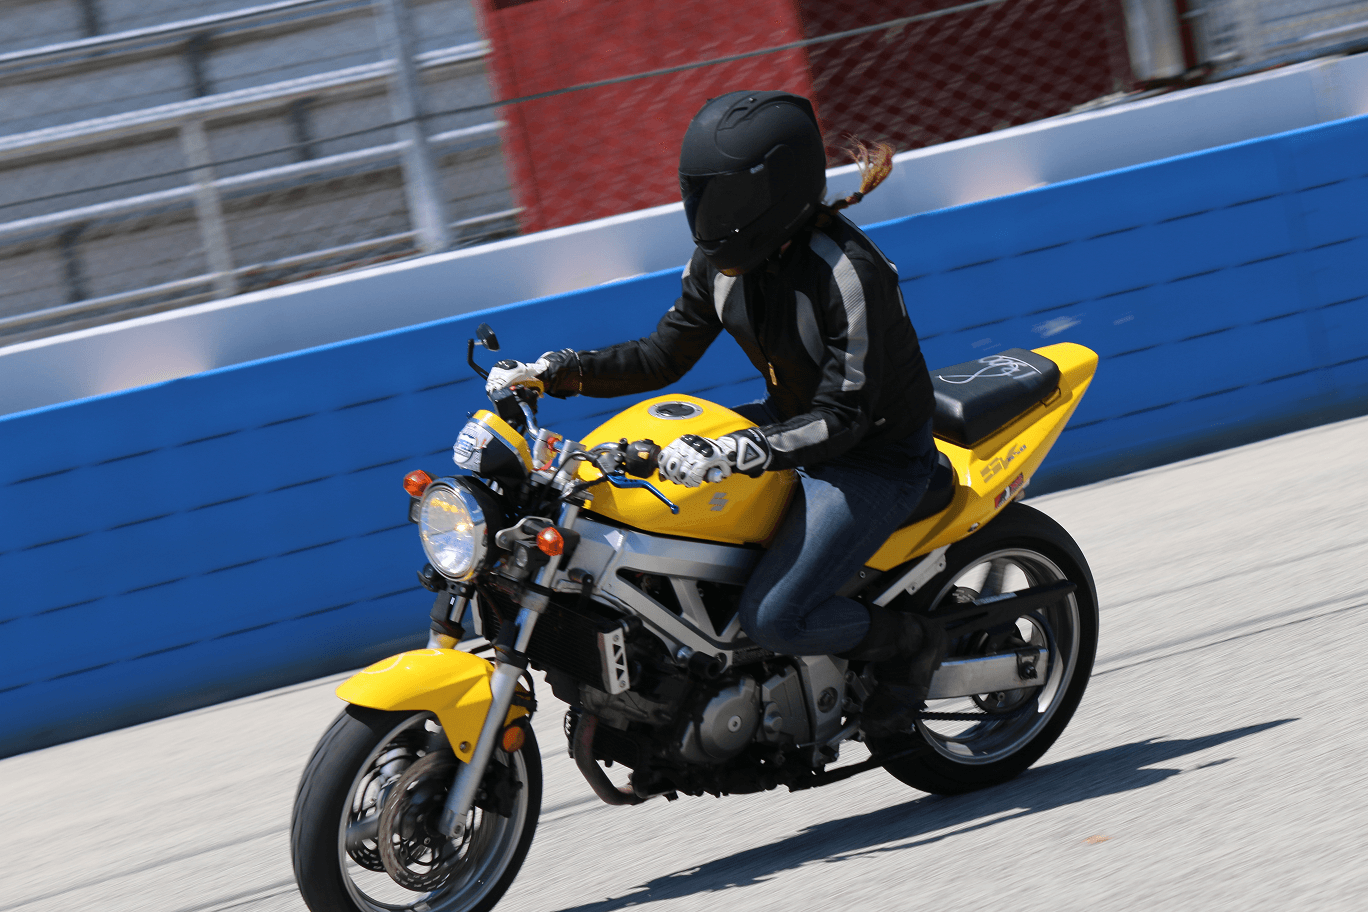 Rider practicing Emergency Braking during motorycle safety course